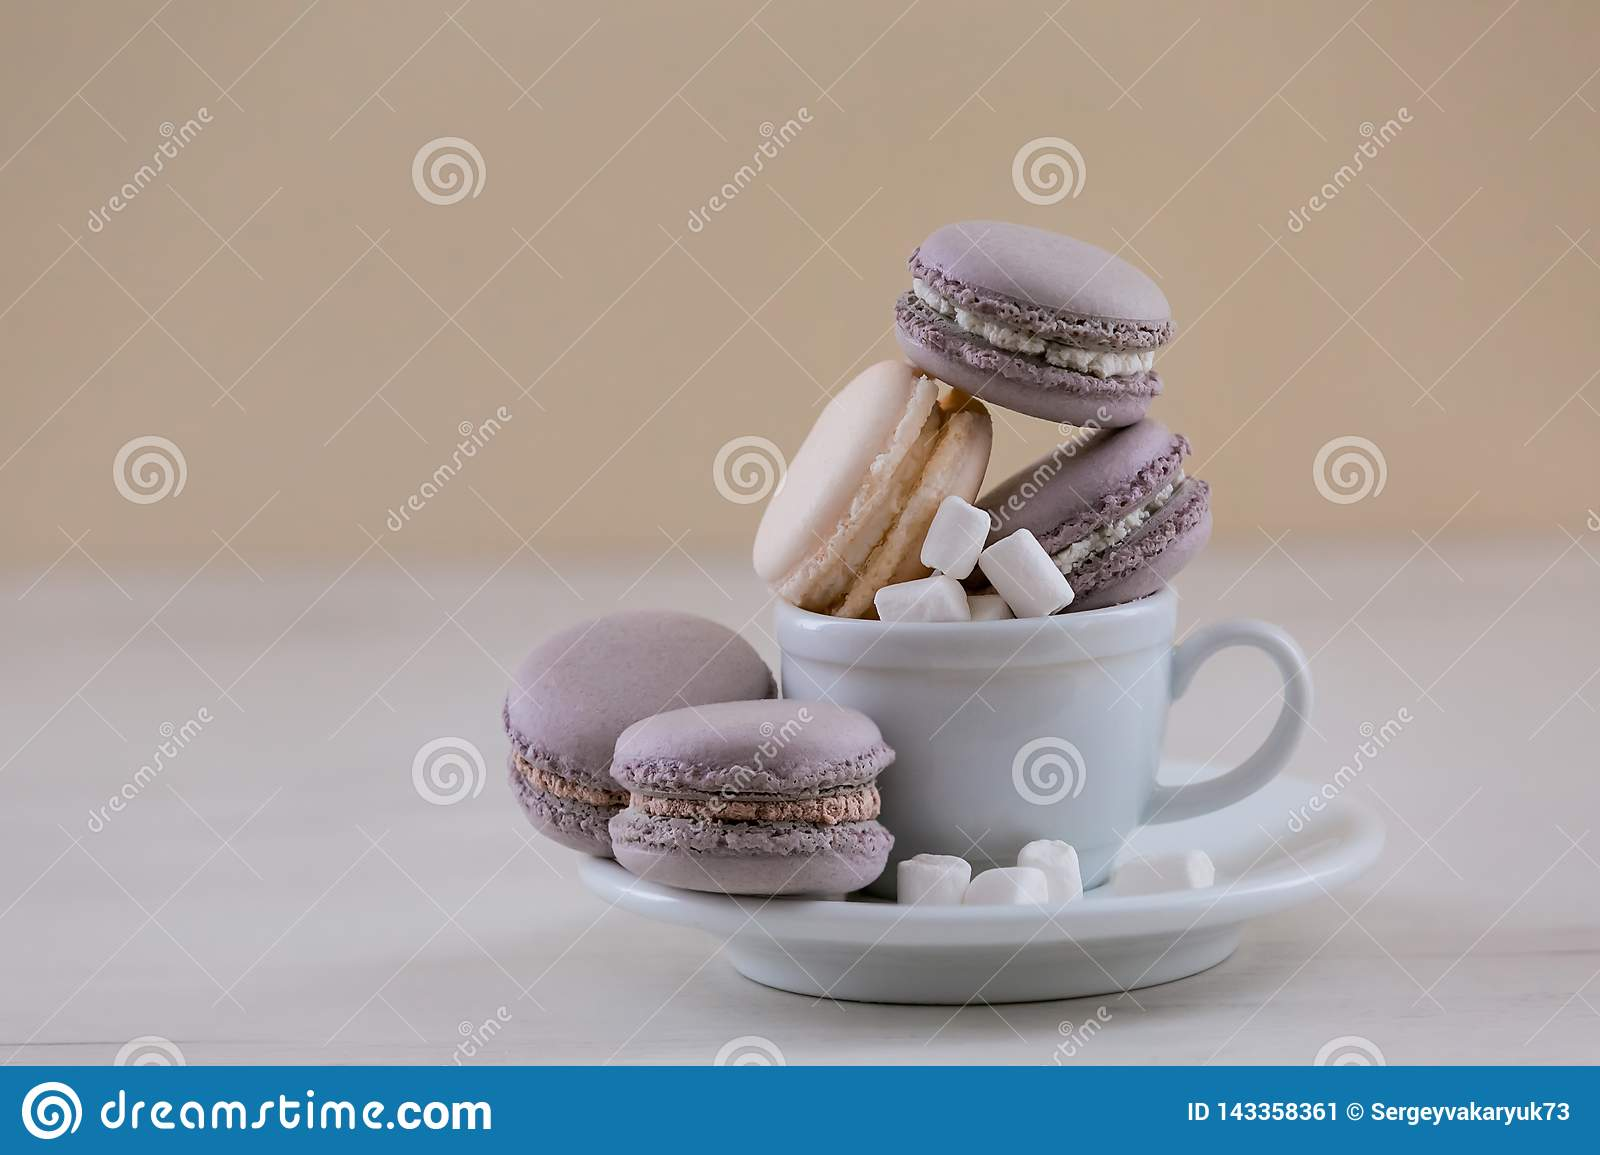 Purple macaroons in the cup.